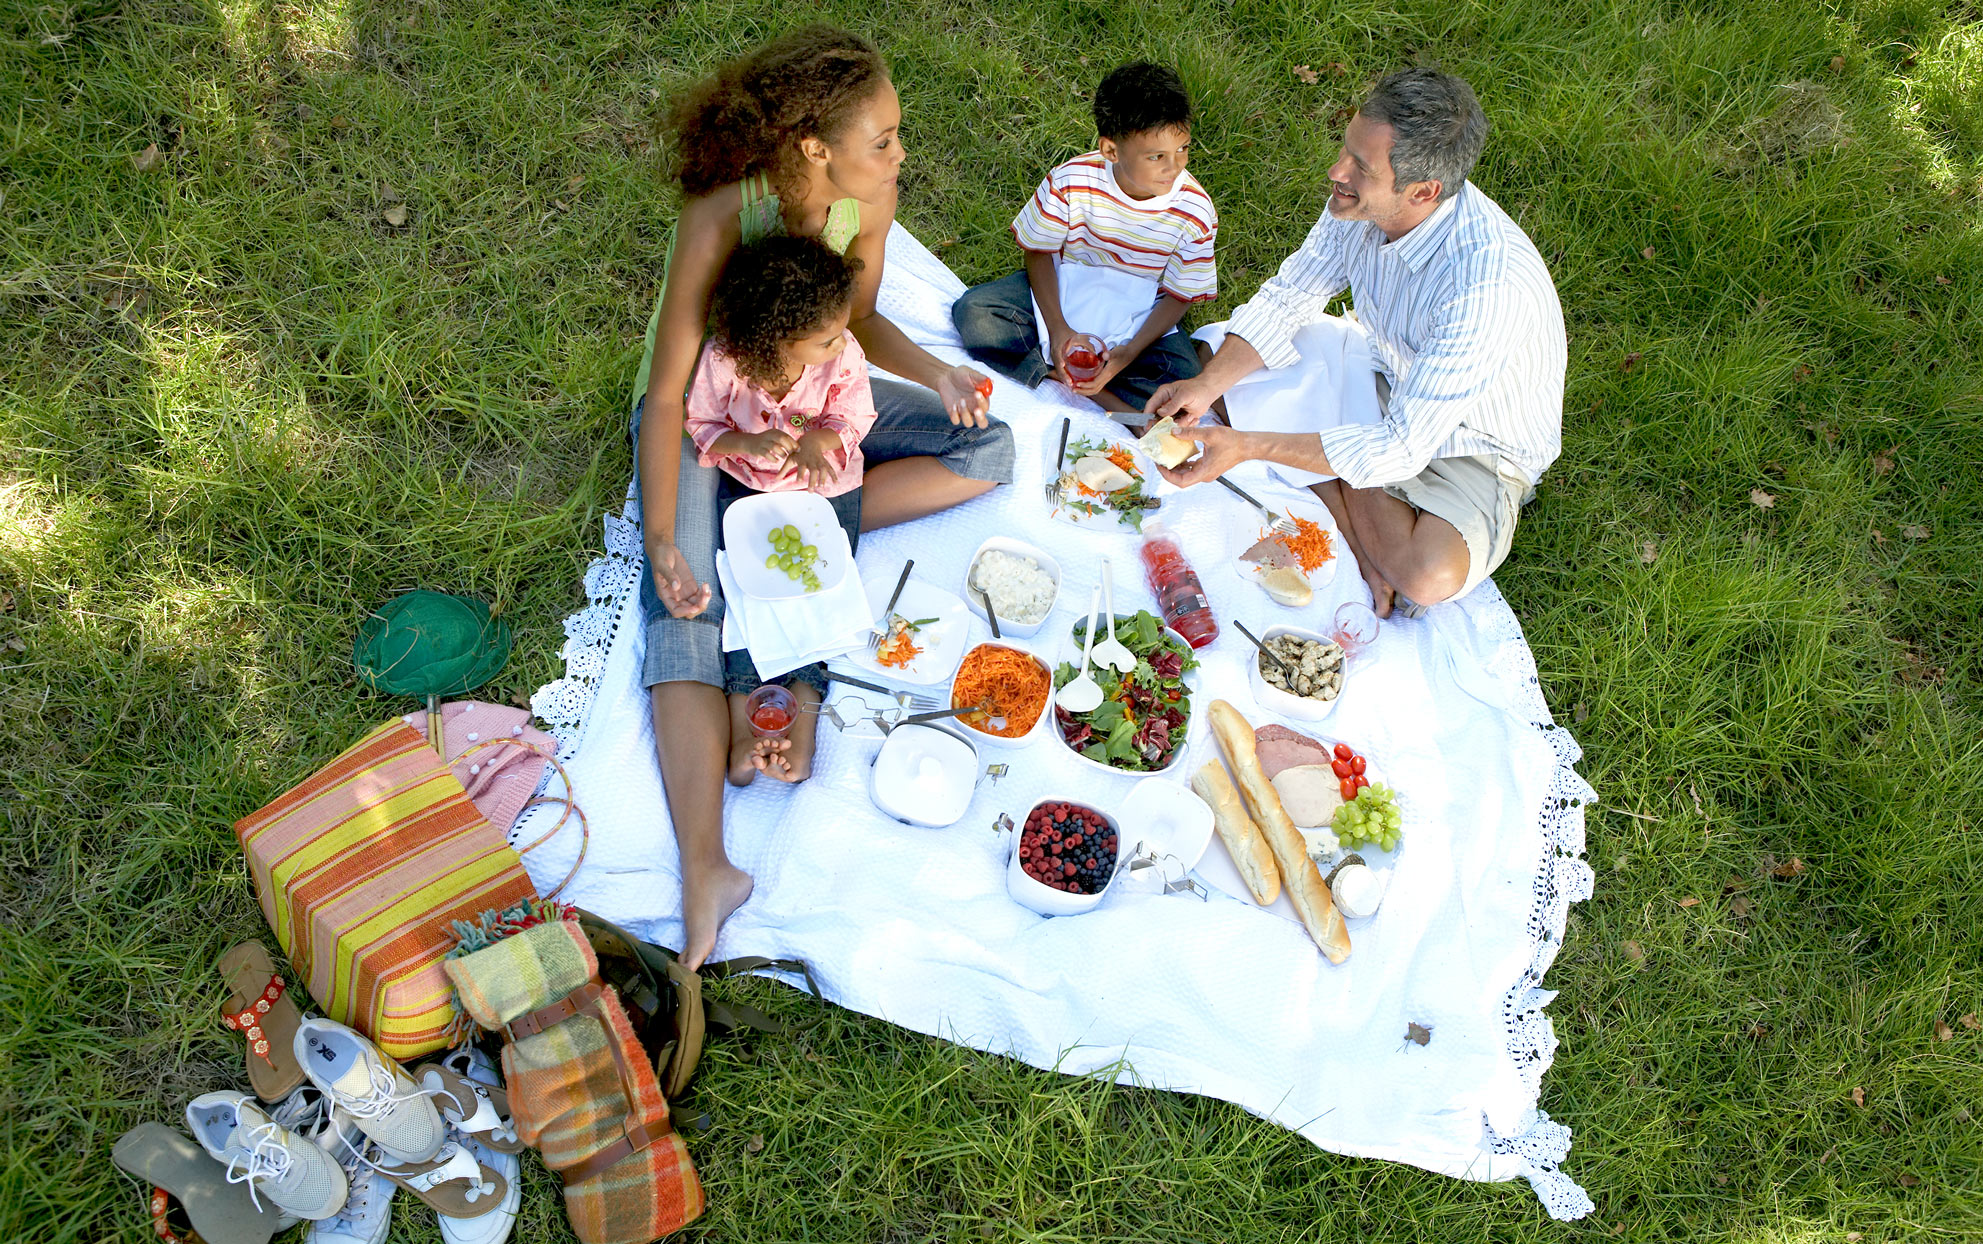 Ethnic family picnicking on a blanket in the grass